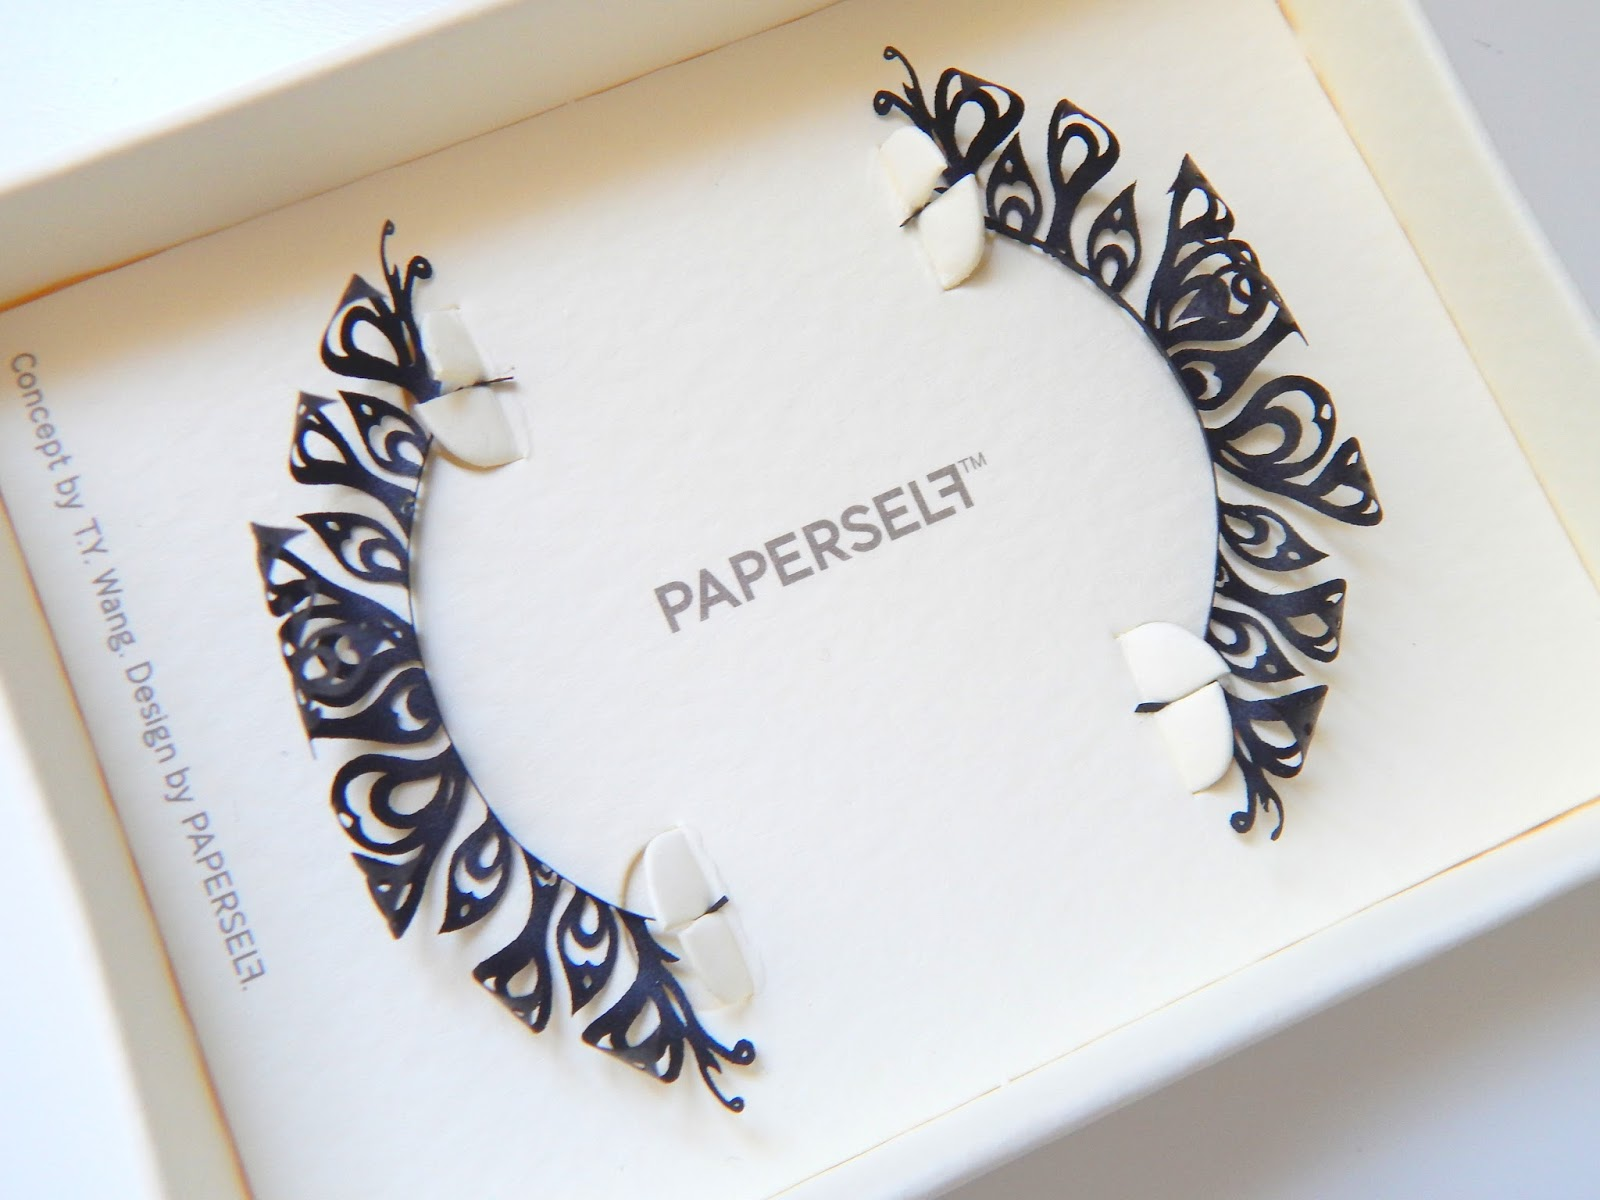 Paperself || Lashes and Tattoos